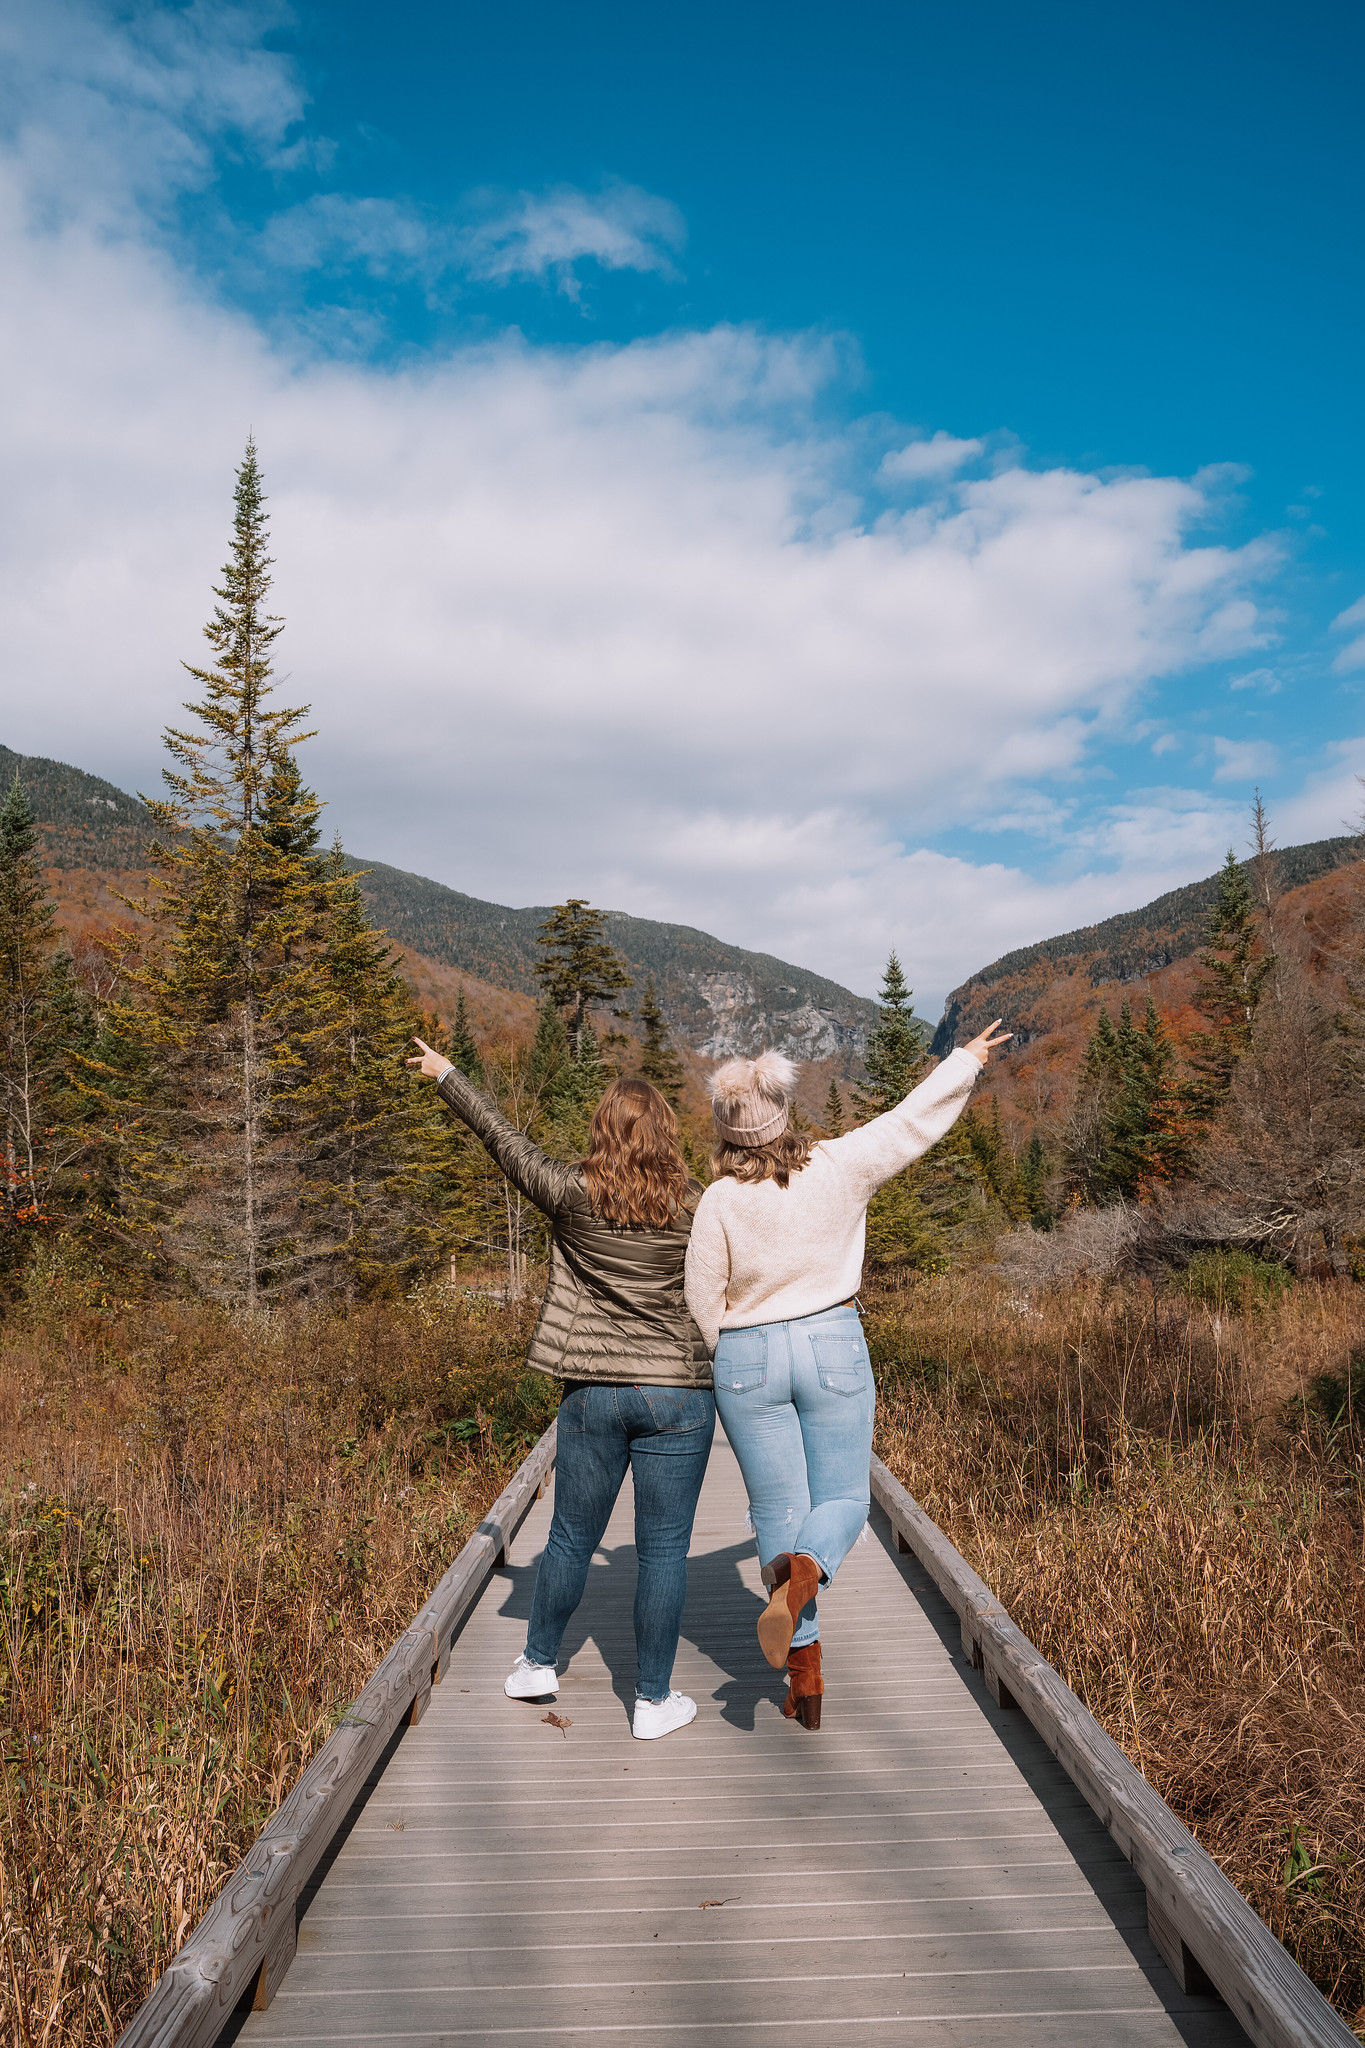 Stowe Mountain Resort | Stowe VT | My Complete Vermont Fall Travel Guide: What to See, Do & Eat | Ultimate Fall Guide to Vermont | 5 Day Vermont Road Trip | Fall Foliage Road Trip Guide